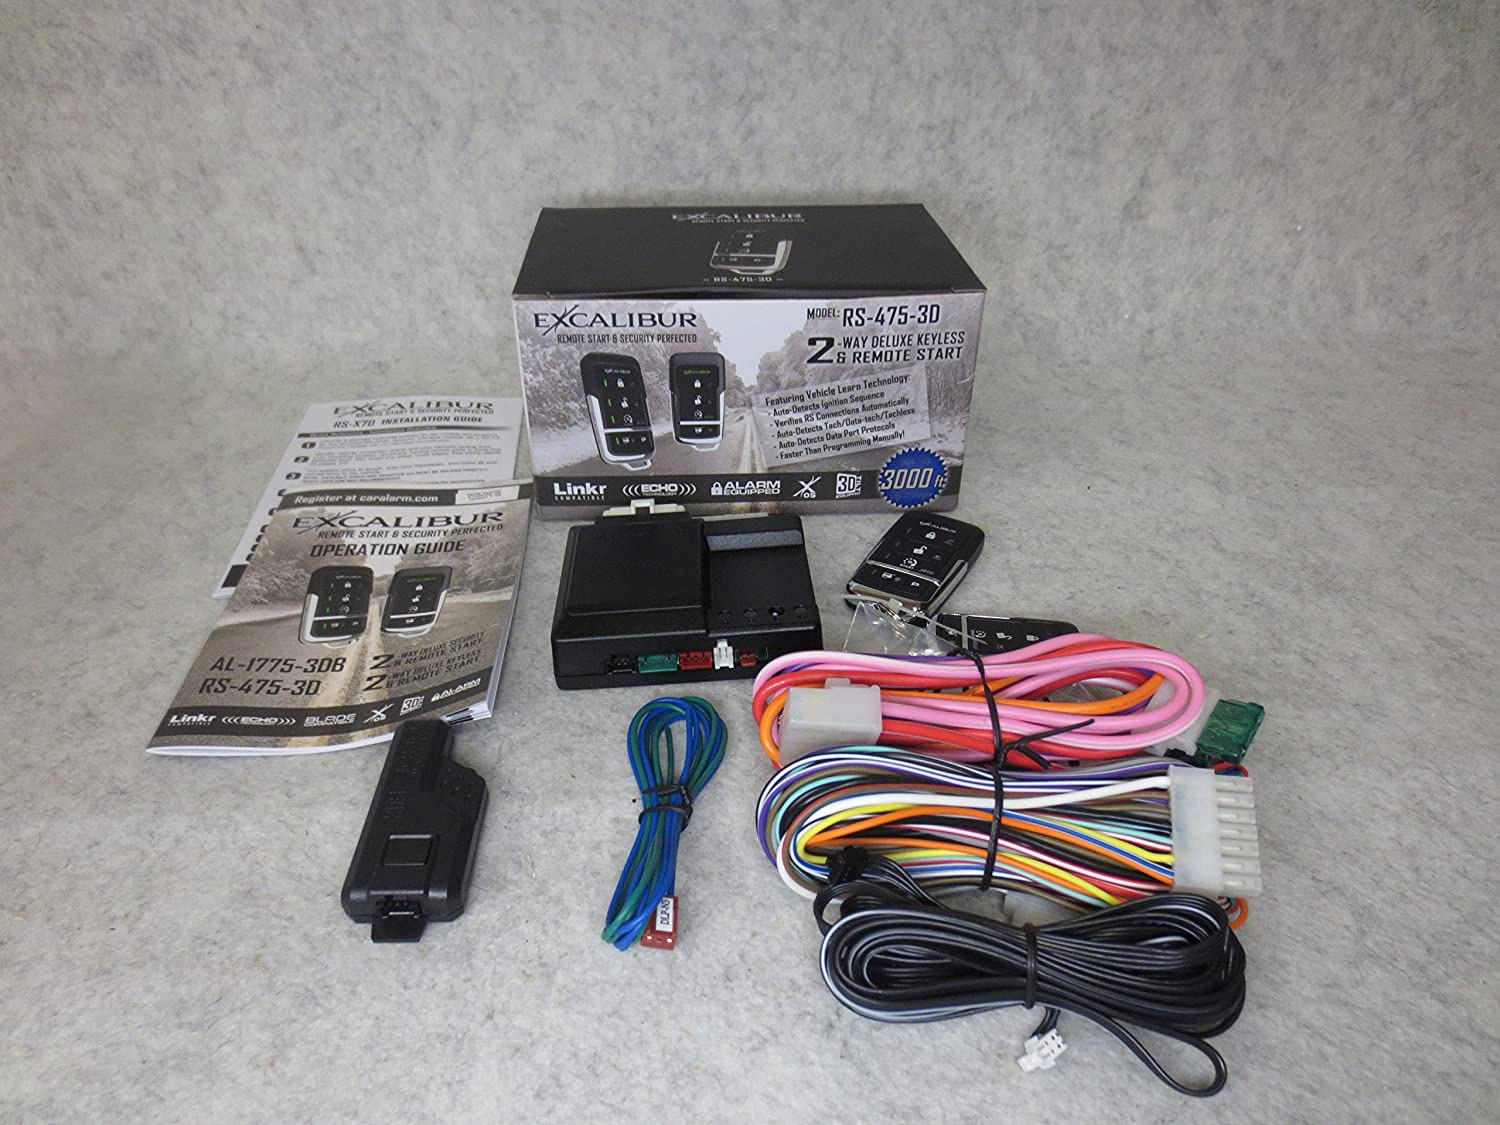 Amazing Jem Wiring Diagram Tiny Bulldog Security Products Flat Bulldog Security Remote Vehicle Starter System Bulldog Security Alarm Young Les Paul 3 Way Switch RedBulldog Remote Car Starters Amazon.com: EXCALIBUR RS 475 3D   Deluxe LED 2 Way Remote Start ..